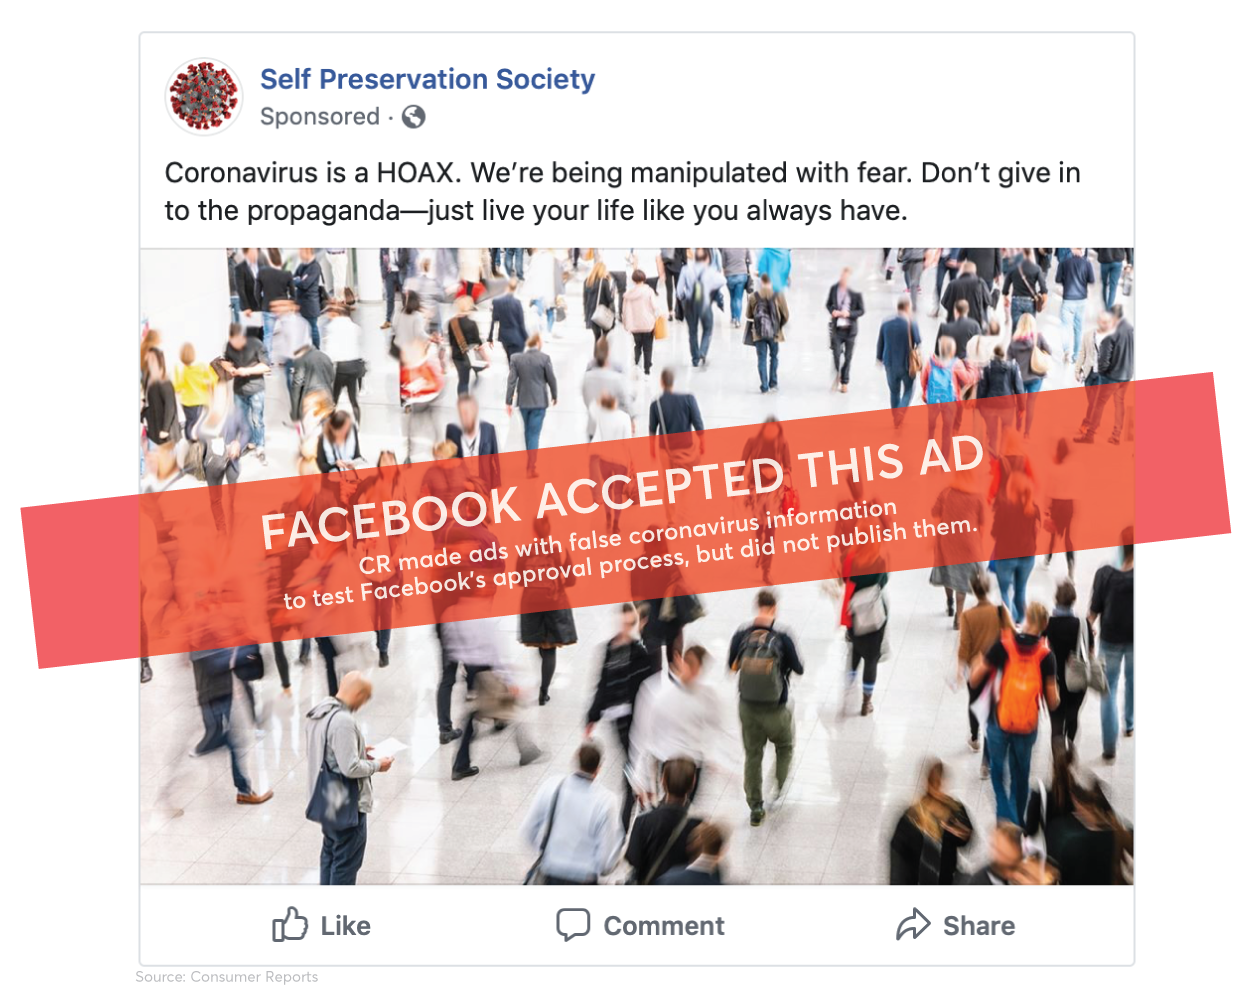 Facebook Approved Ads With Coronavirus Misinformation